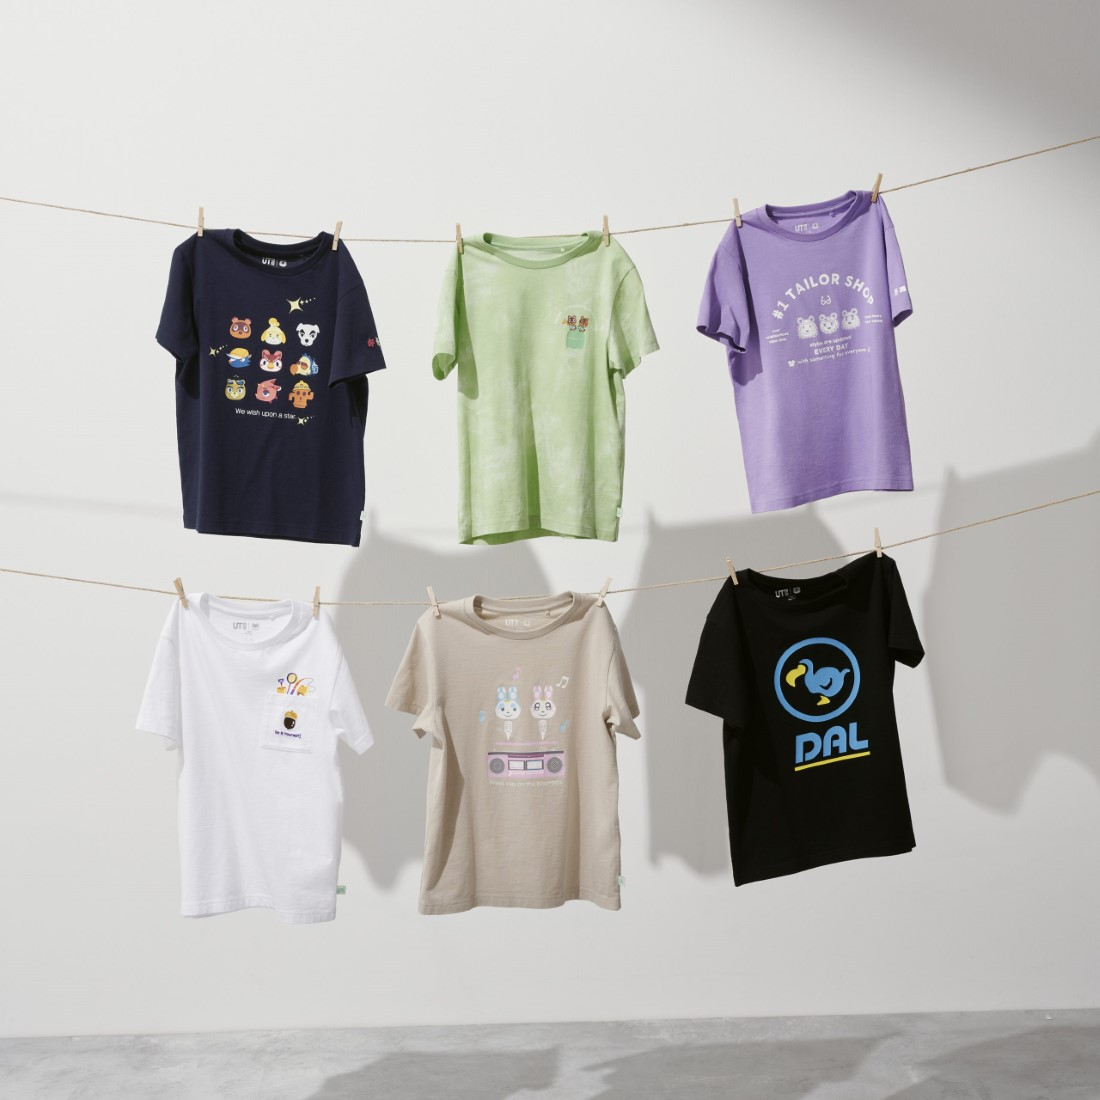 UNIQLO x Animal Crossing: New Horizons